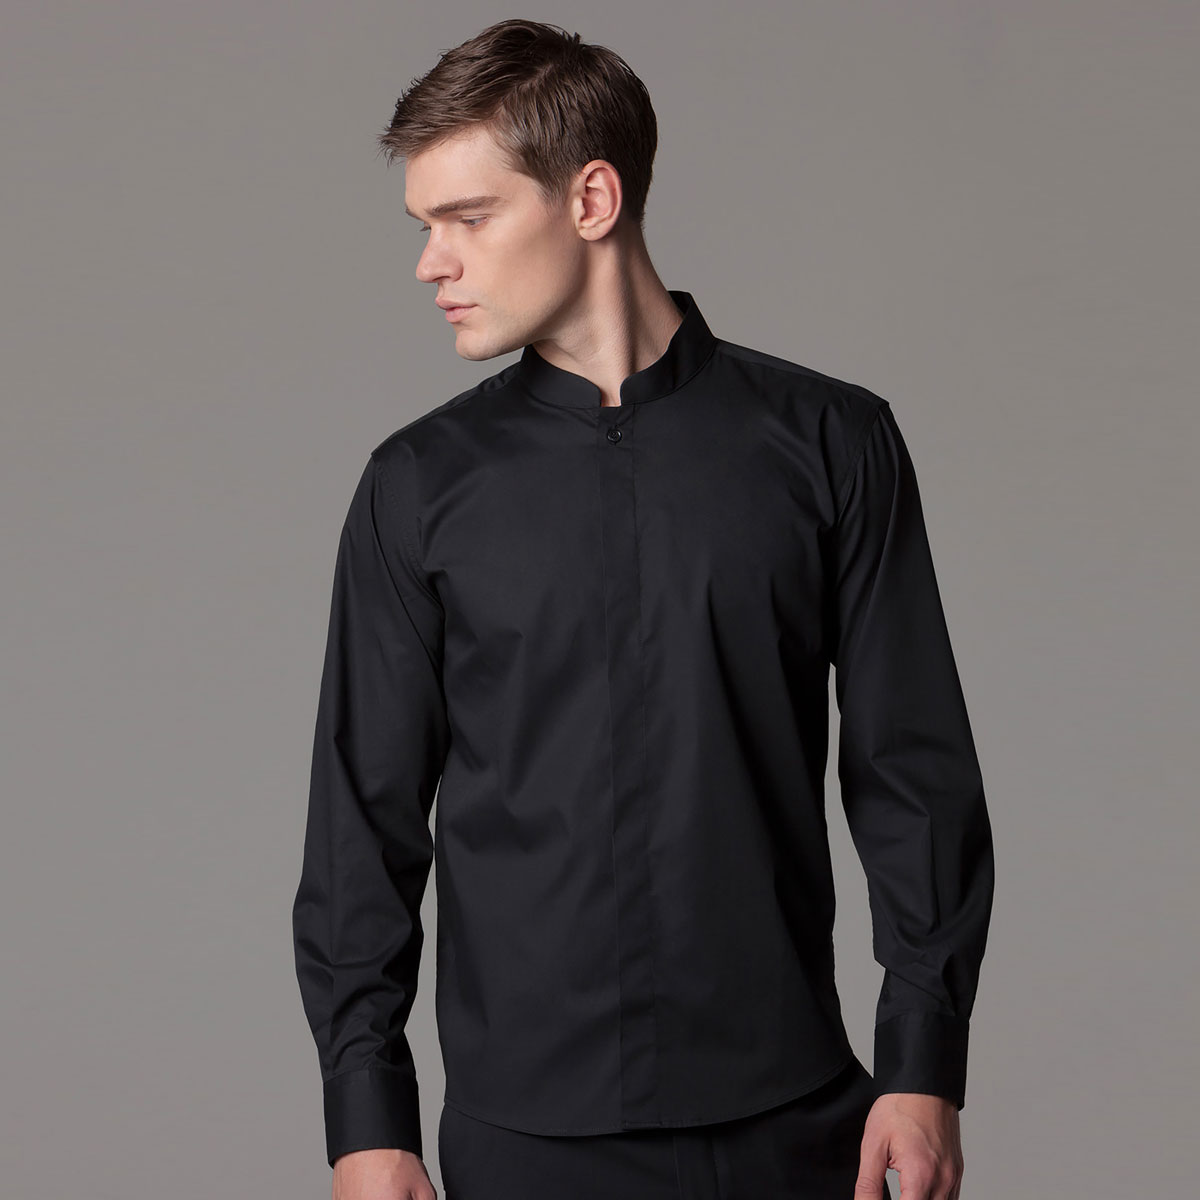 Mandarin Collar Hospitality Shirt Long Sleeve - KK123